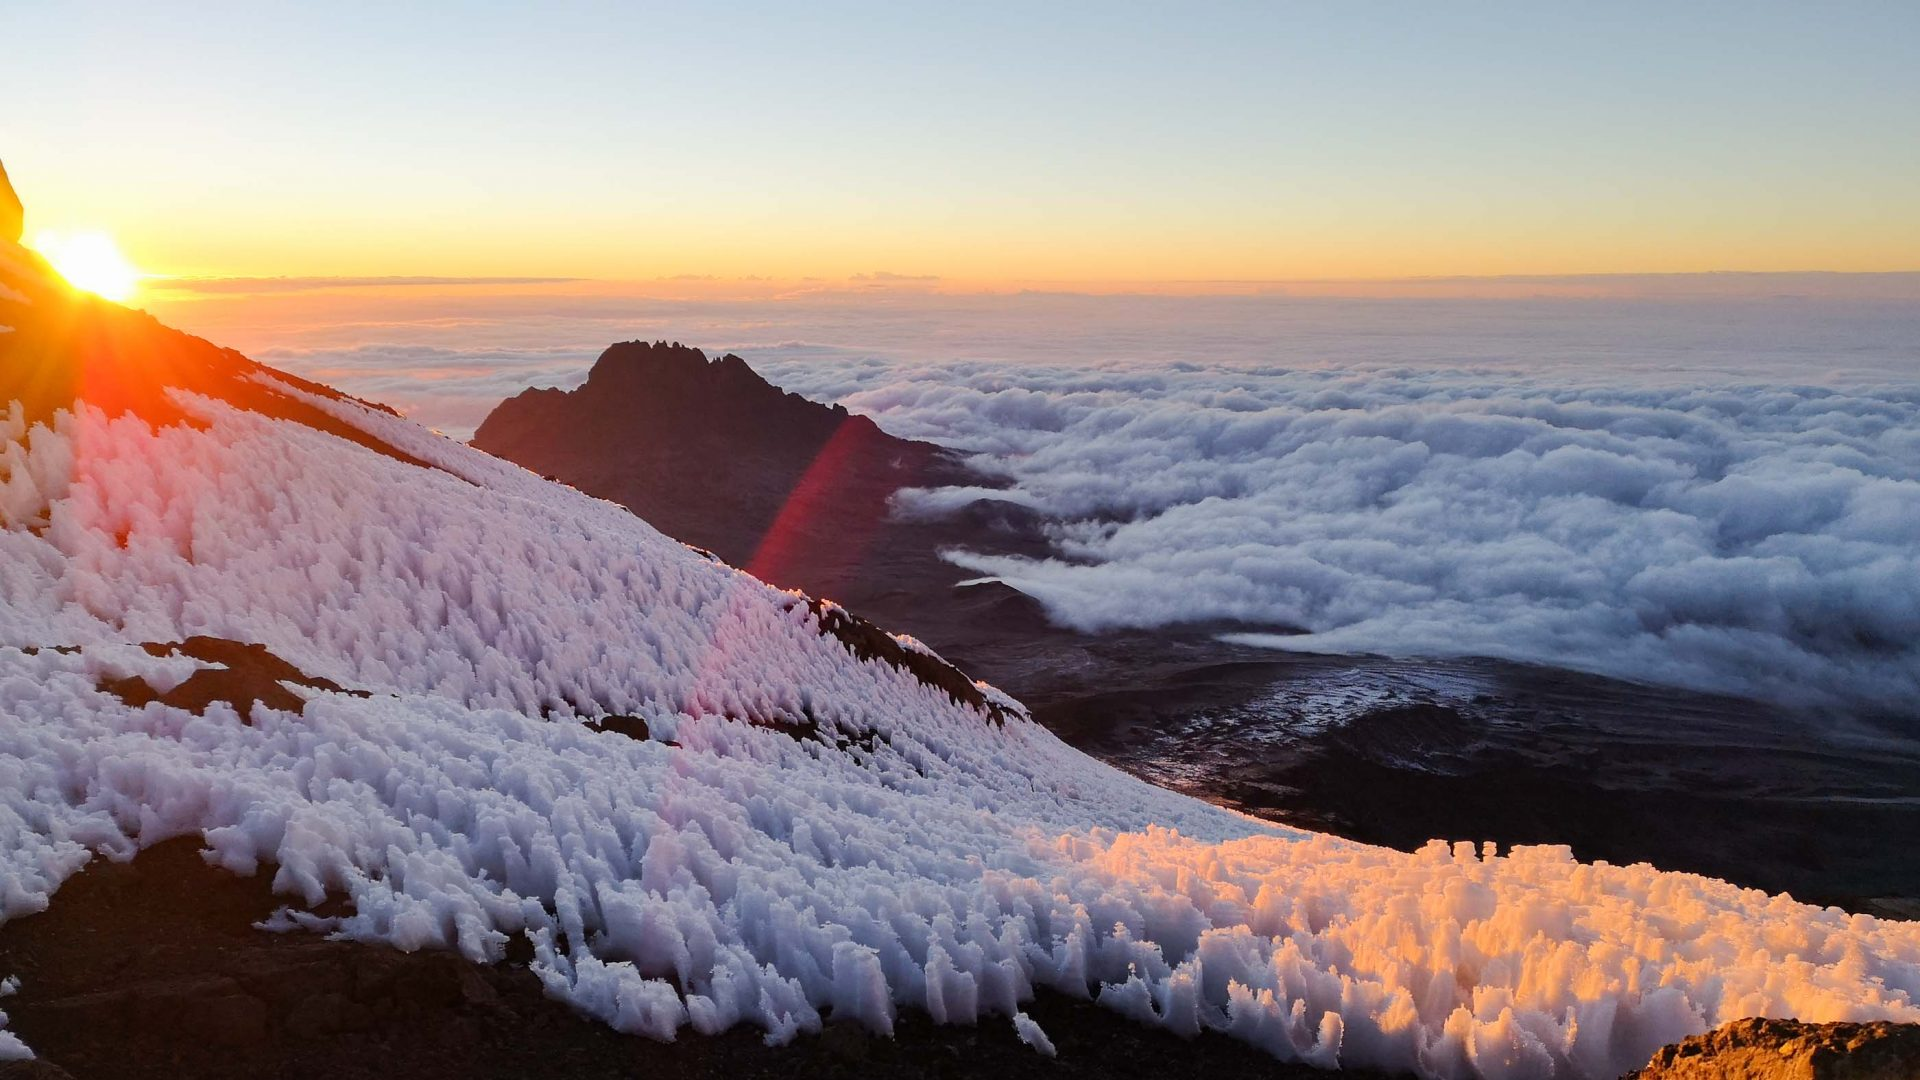 Post-pandemic, can we find better ways to climb Kilimanjaro?